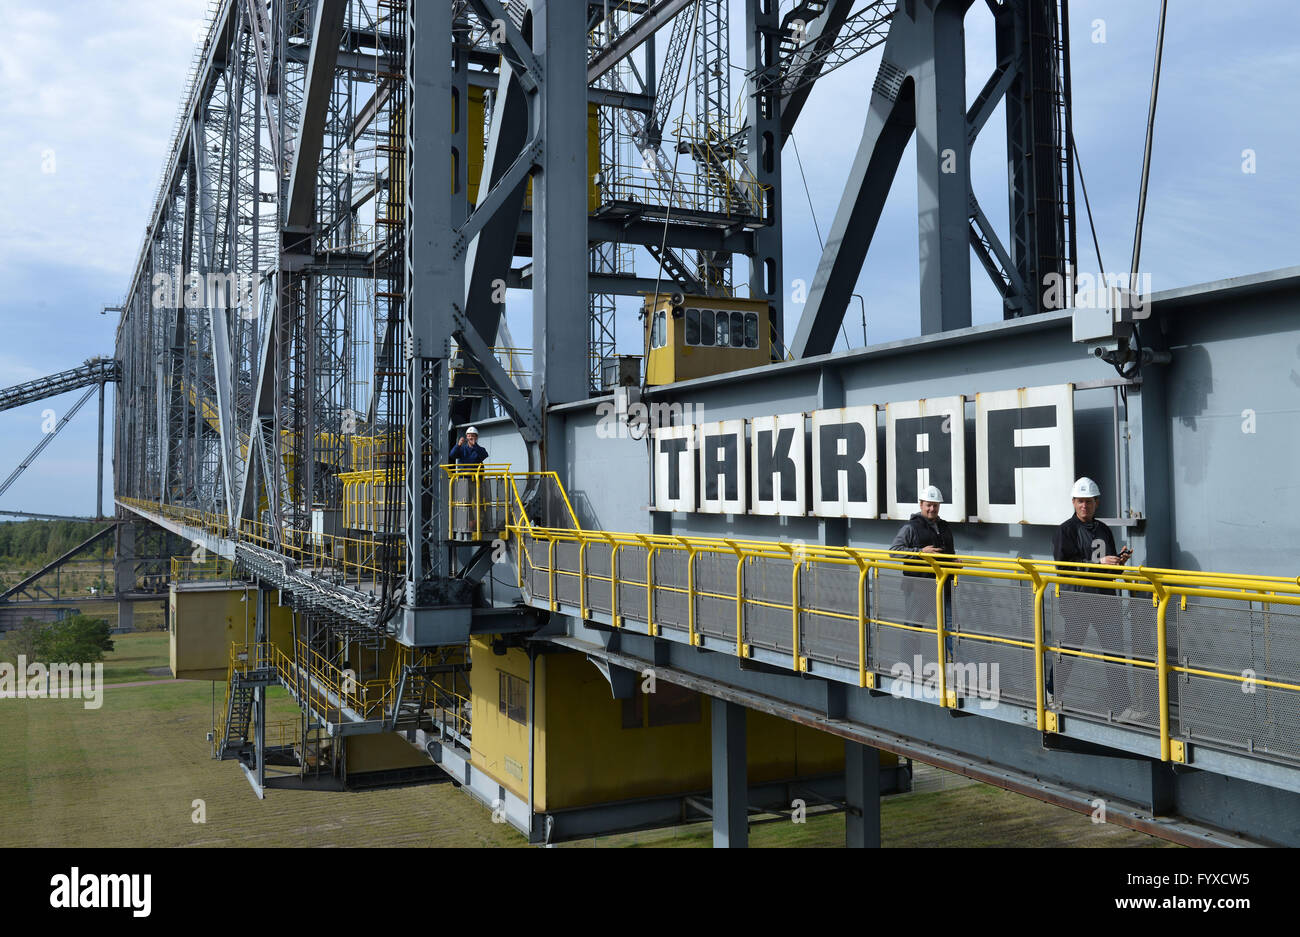 Overburden Conveyor Bridge F60, mine, Lichterfeld-Schacksdorf, Elbe-Elster, Brandenburg, Germany Stock Photo